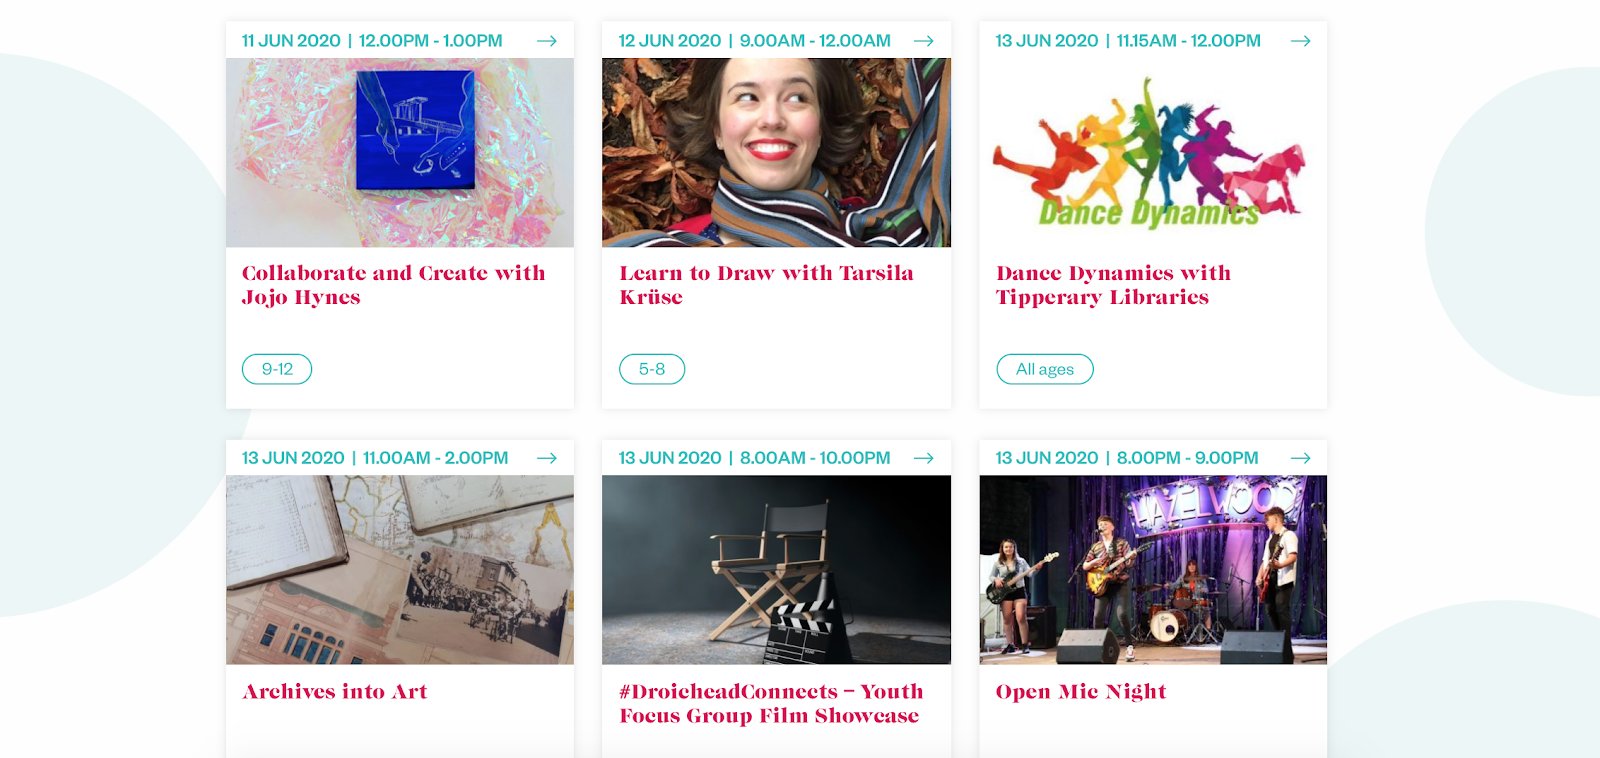 Link to Creative Ireland Event Listings